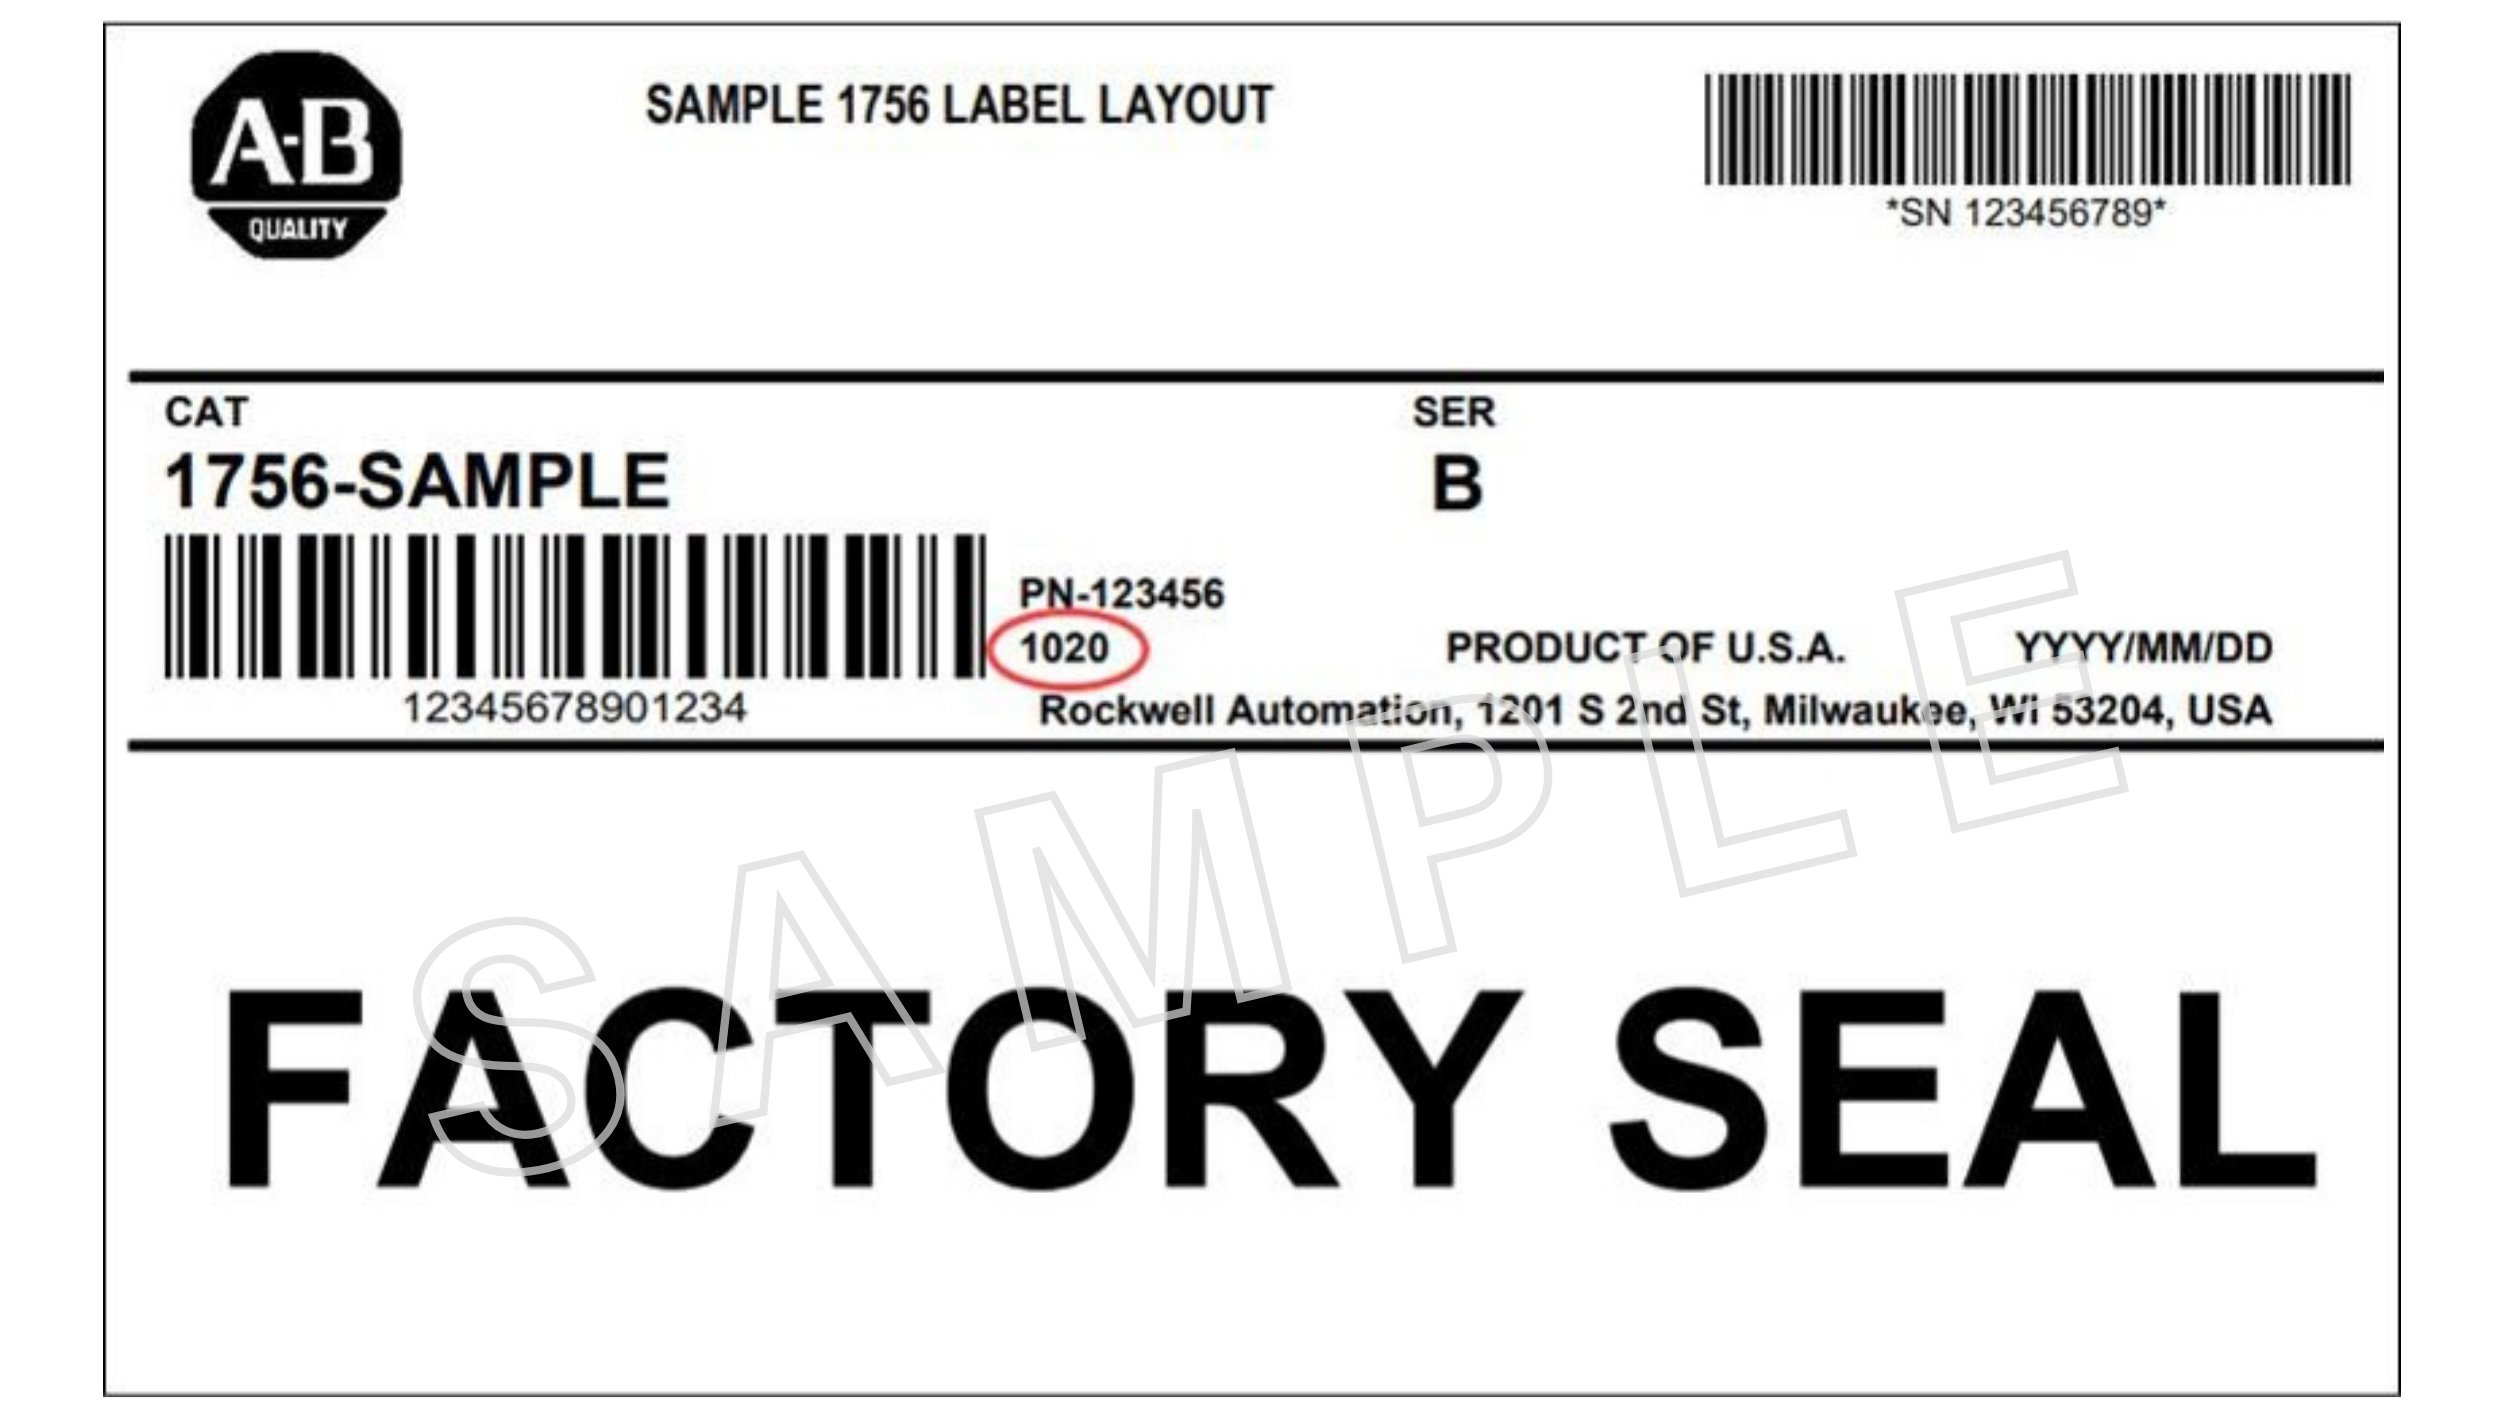 Sample of a Factory Seal for packaging